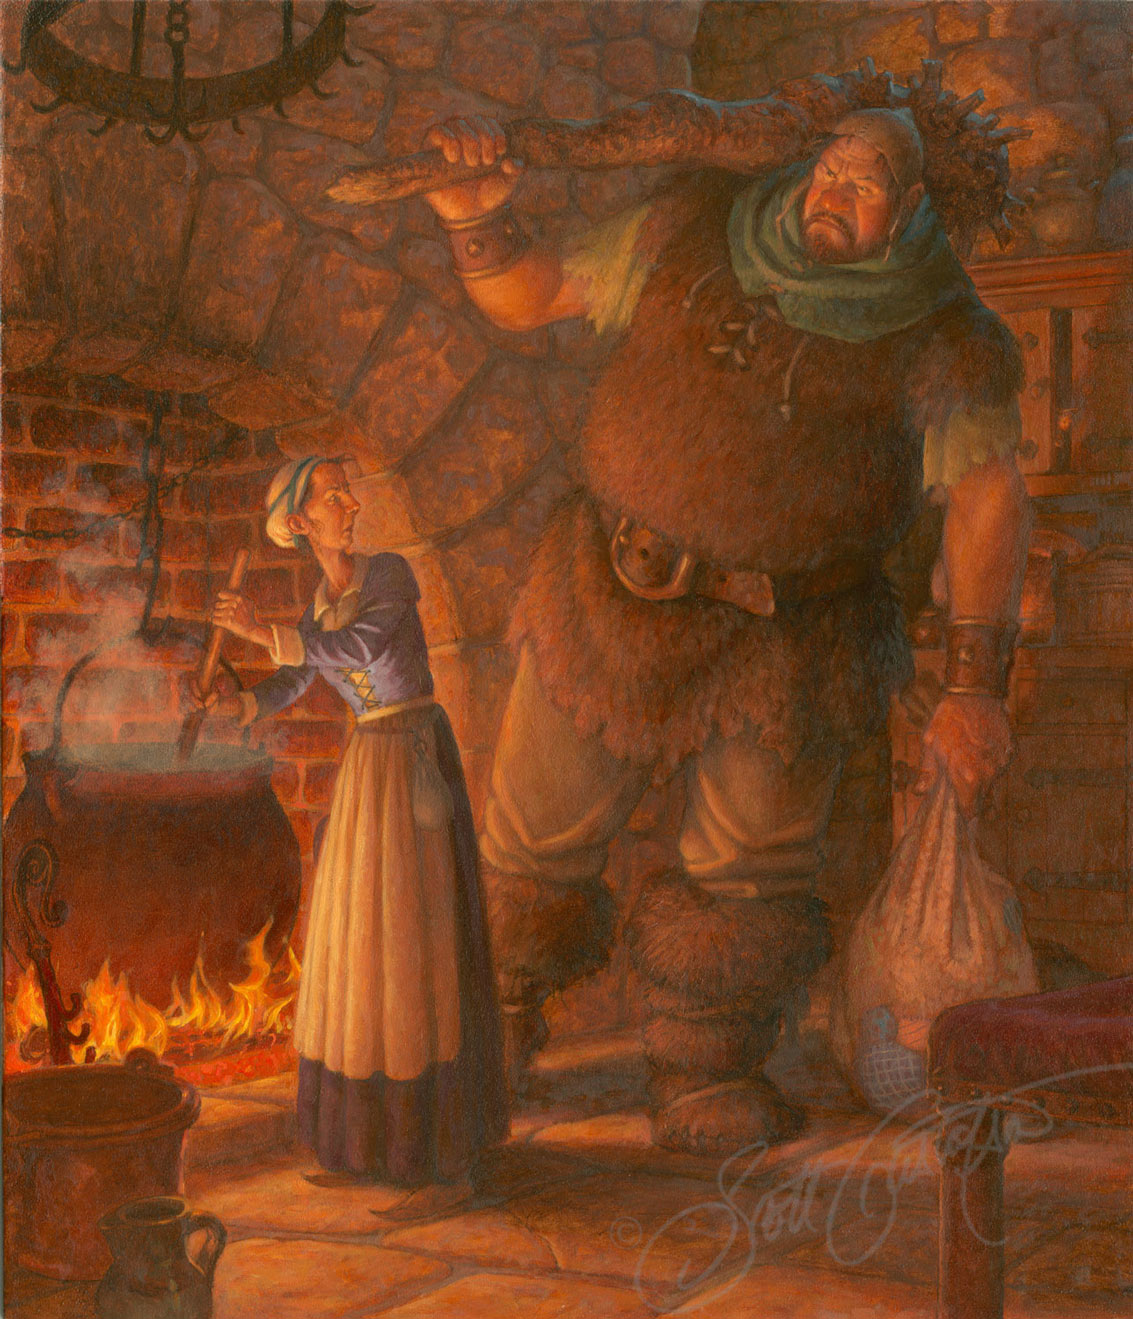 The Giant and his Wife